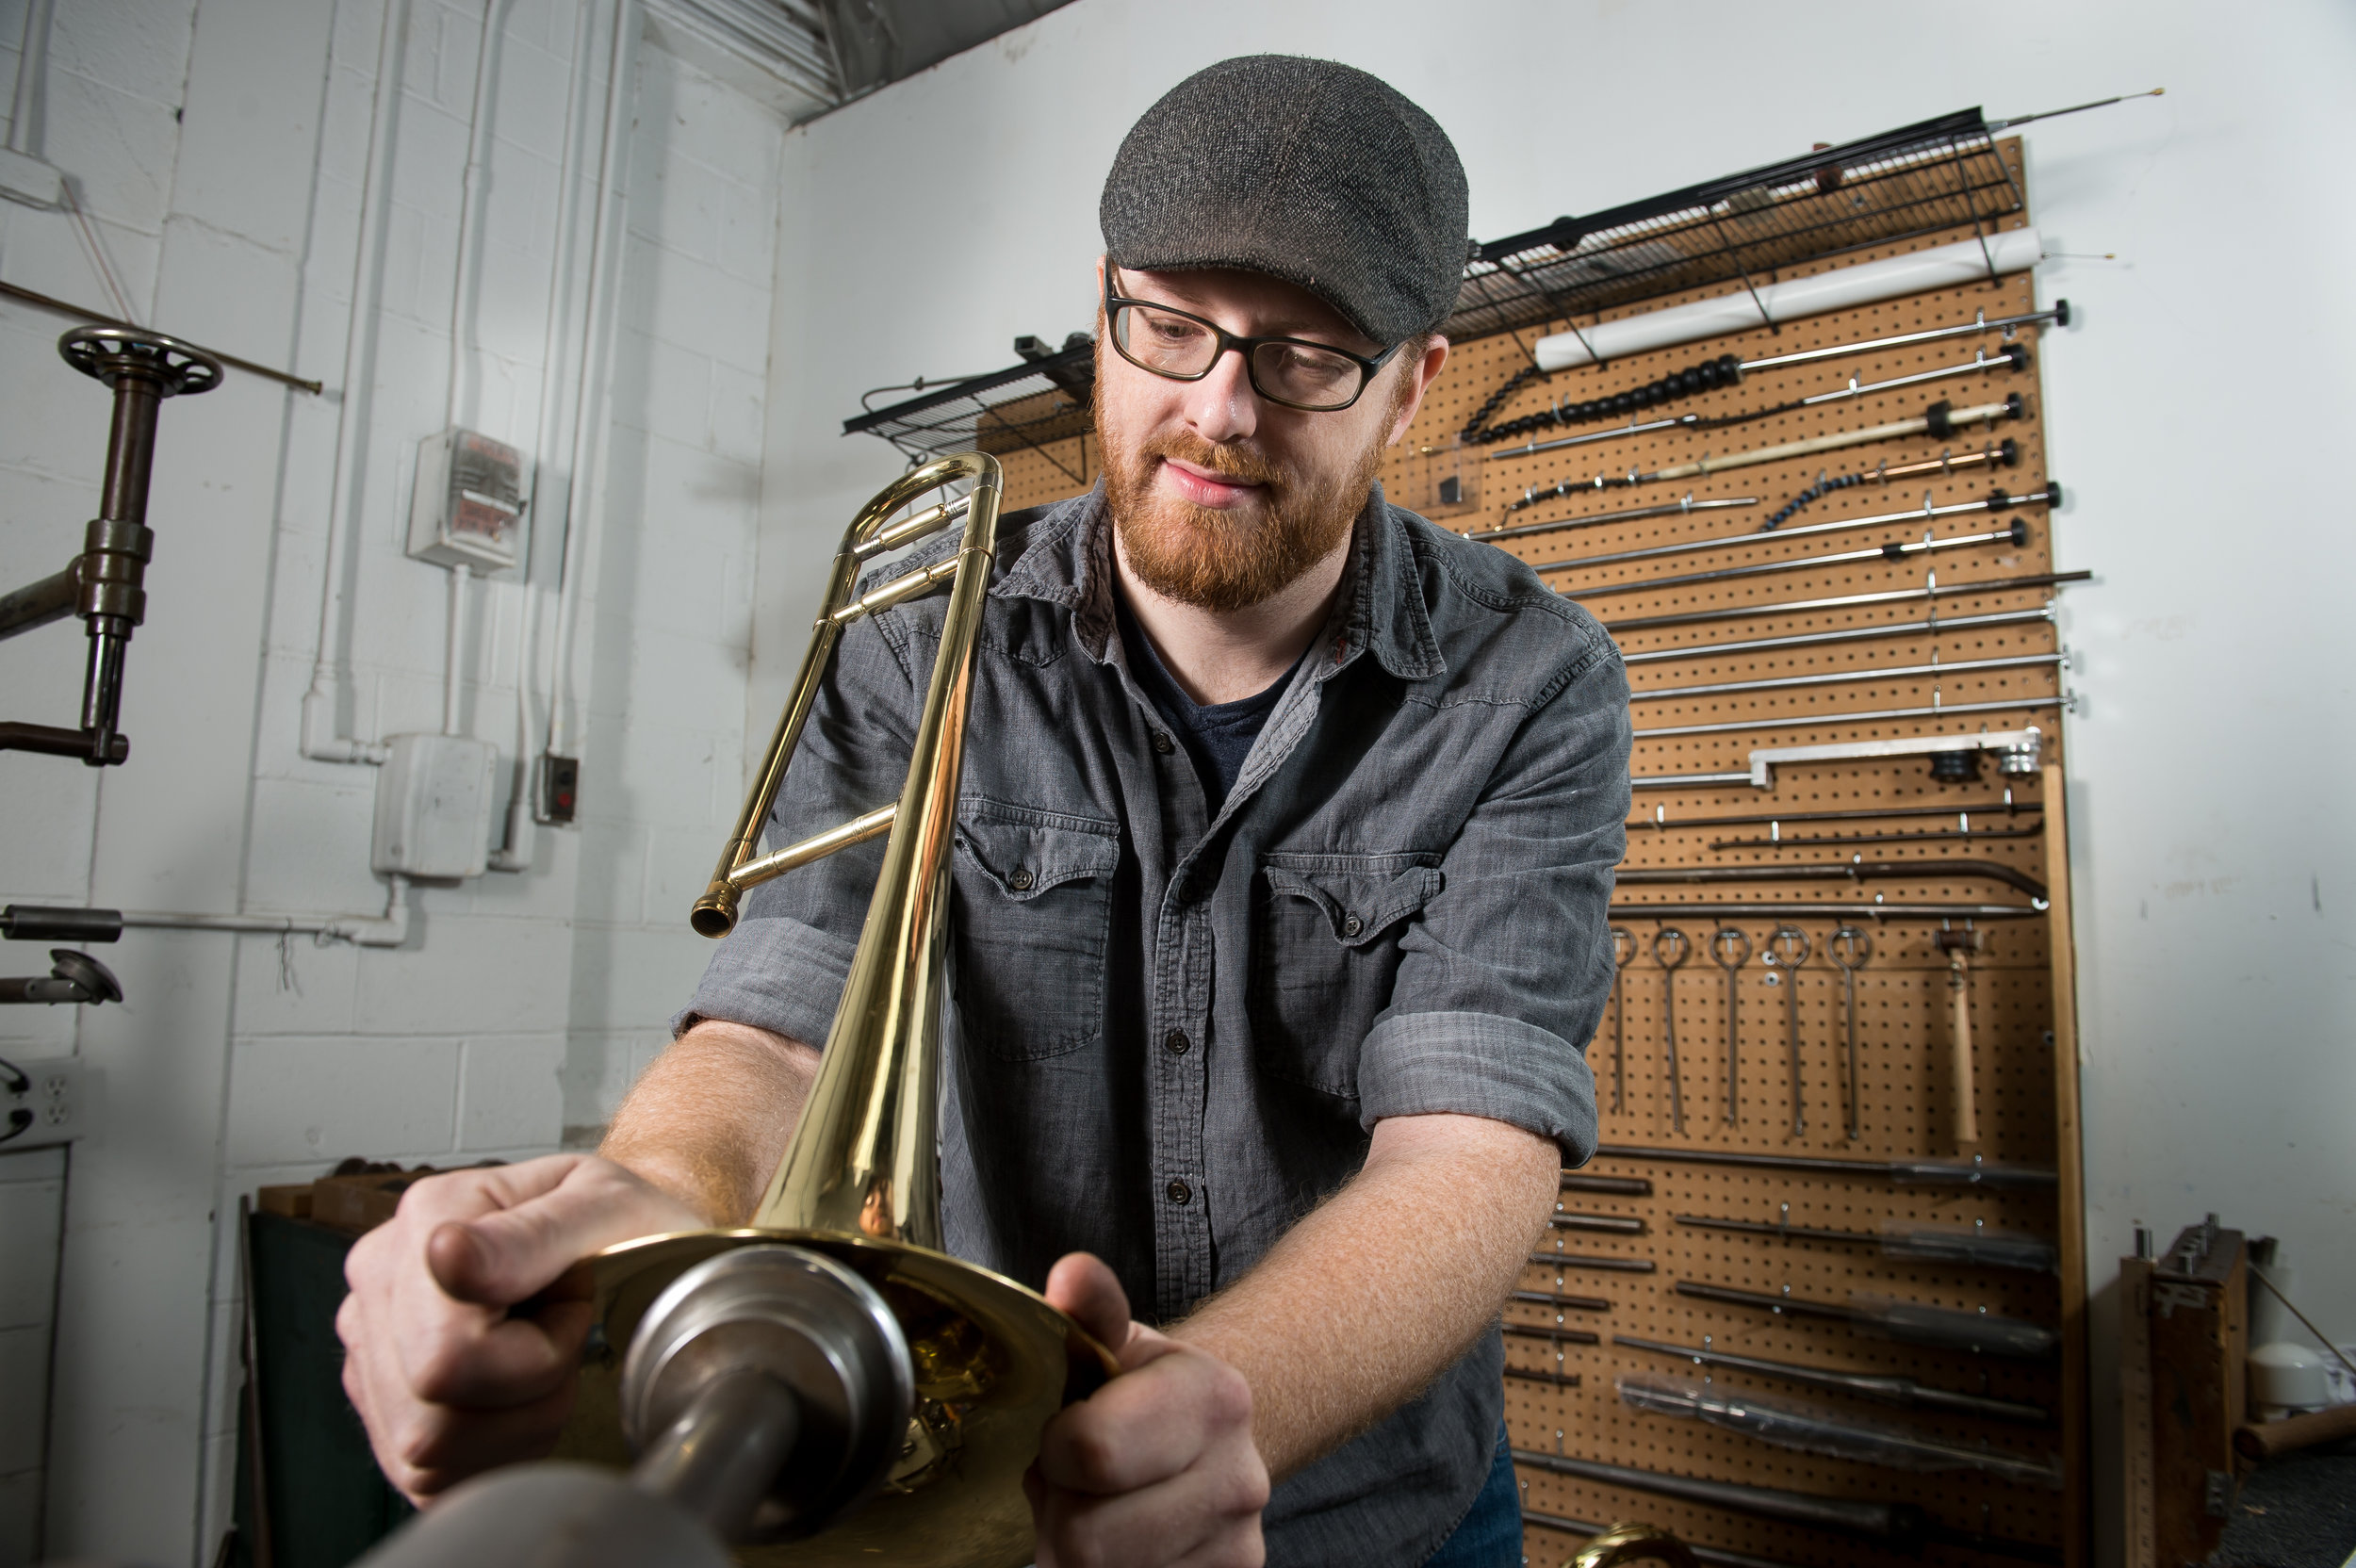 Dane Mountain, Brass Shop Manager repairs the bell on a trombone in the Zeswtiz Music Workshop